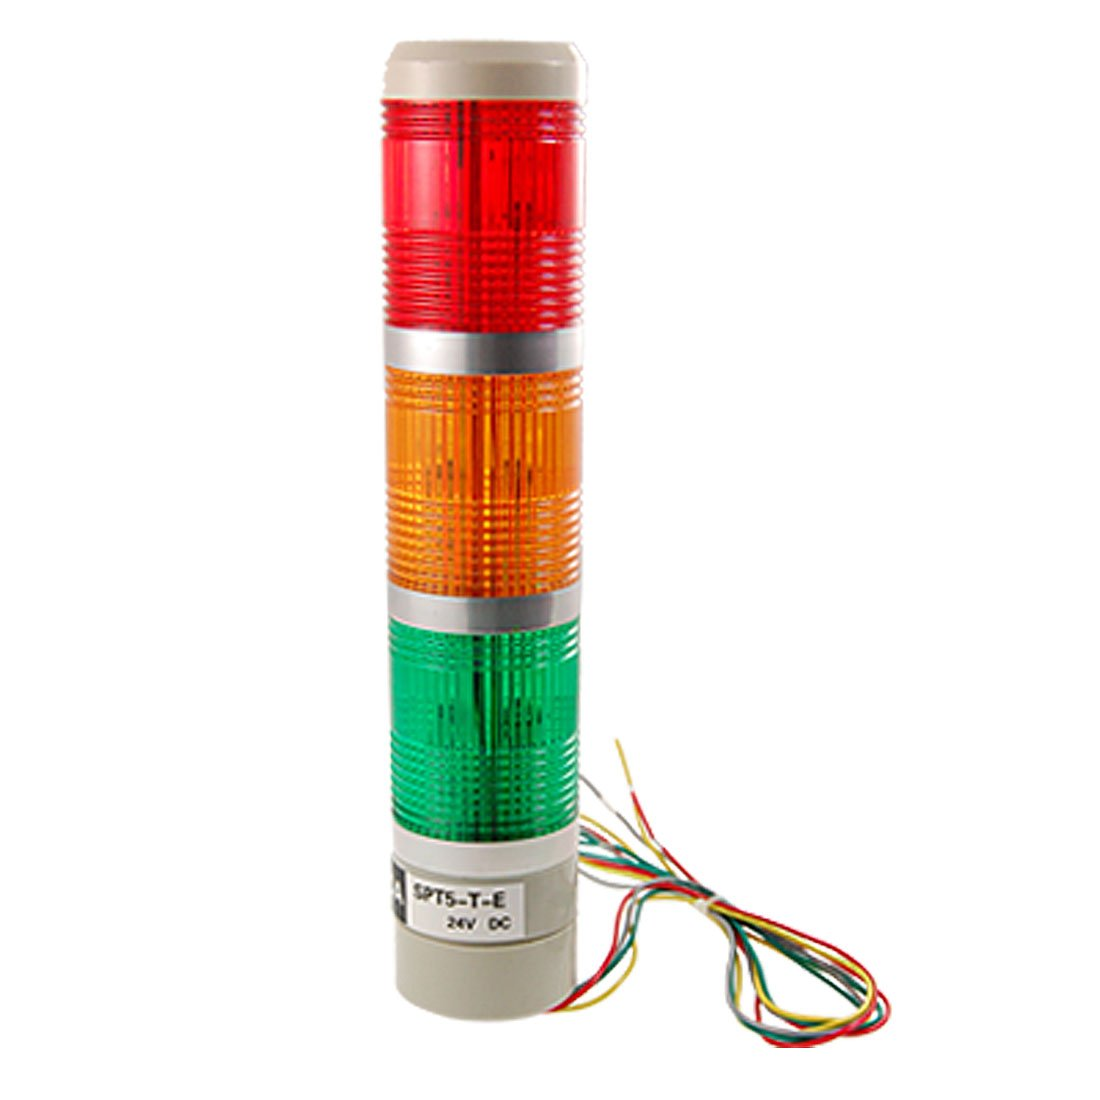 DC 24V Industrial Tower Signal Alarm Lamp Red Green Yellow Light